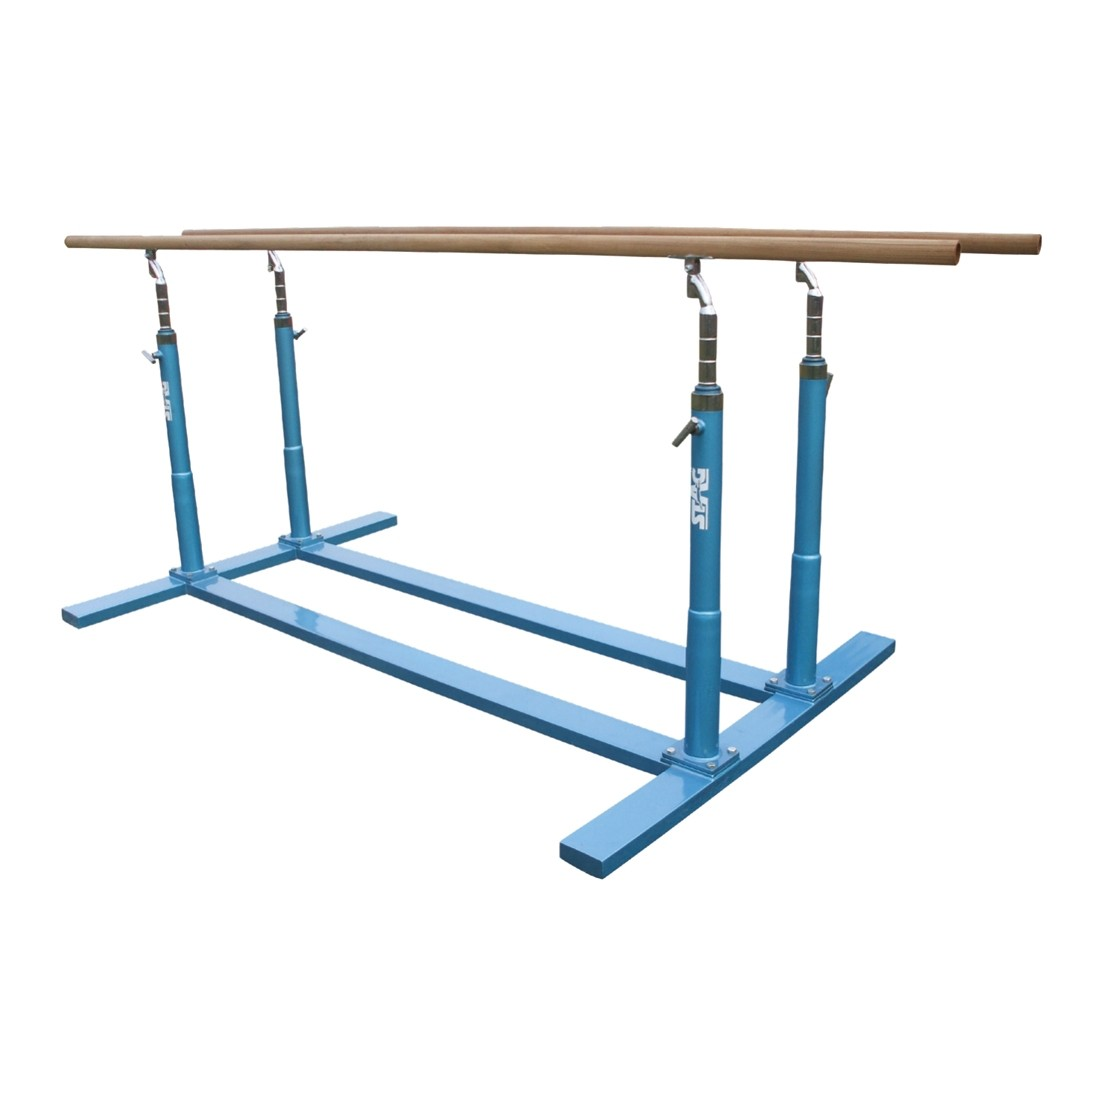 STAG PARALLEL BAR ADJUSTABLE HEIGHT 1.20MTR. TO 2.0MTR.